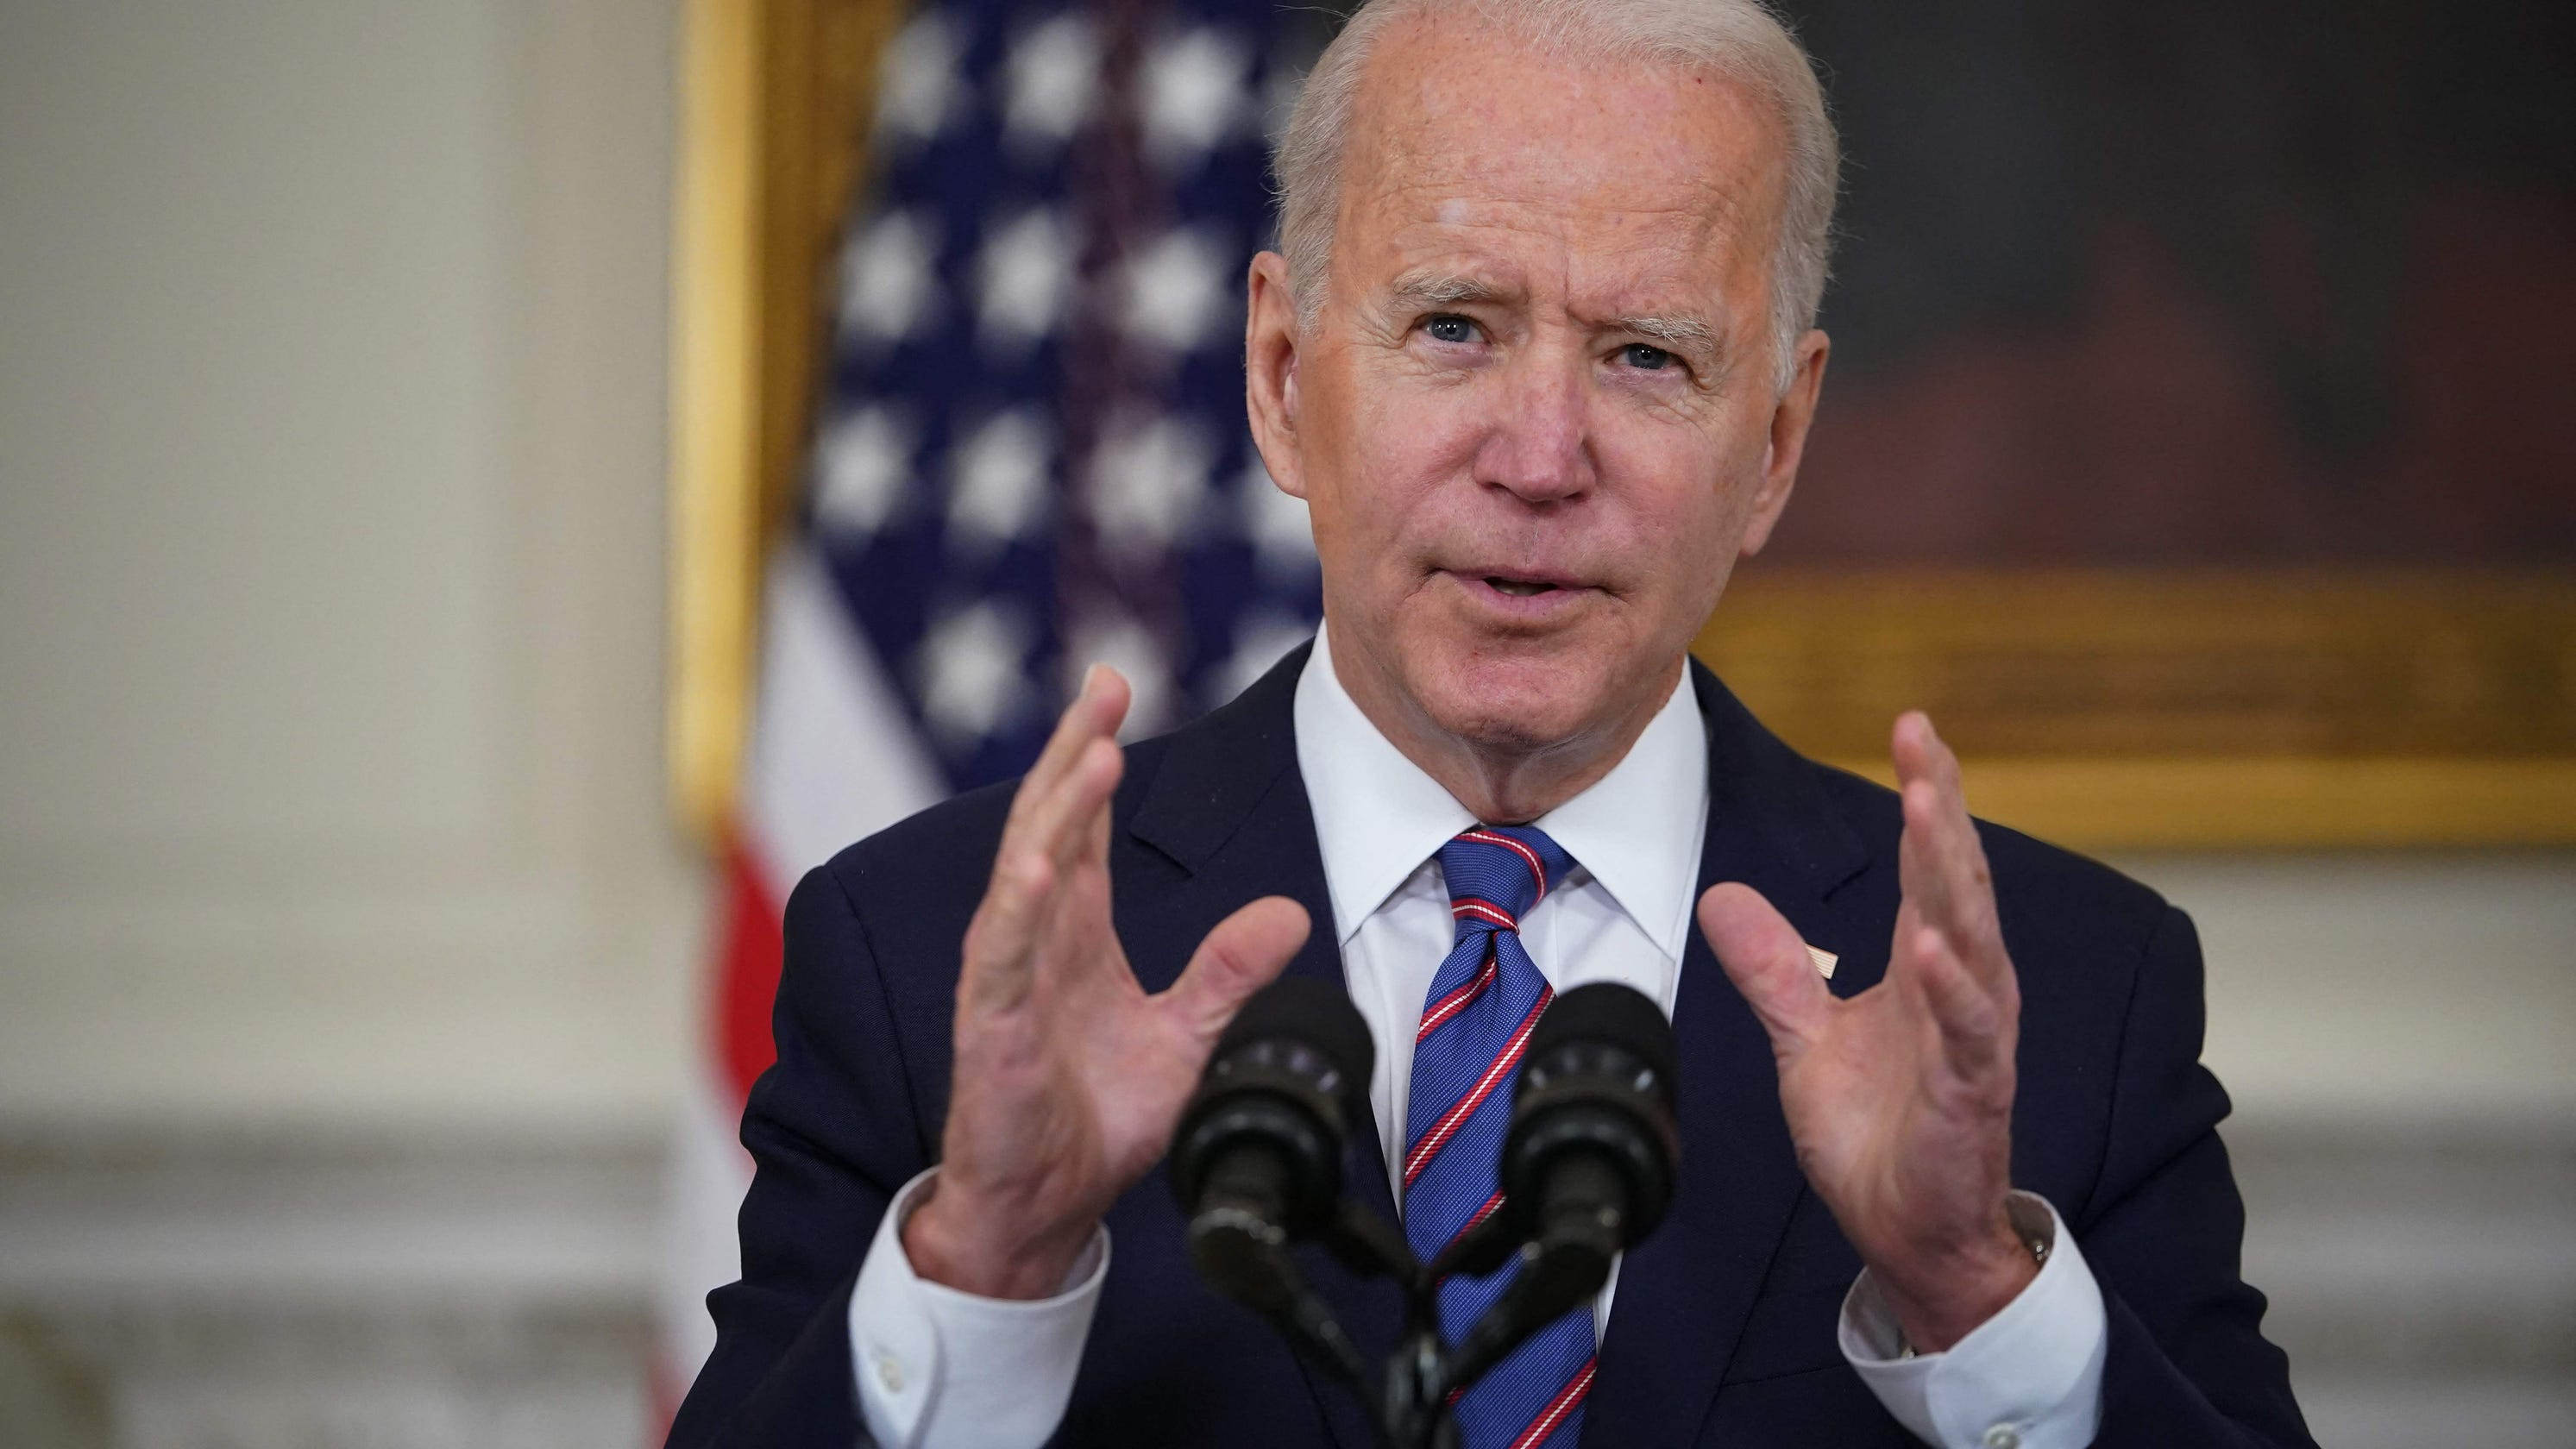 Biden can deliver historic economic progress if he stands firm on raising corporate taxes